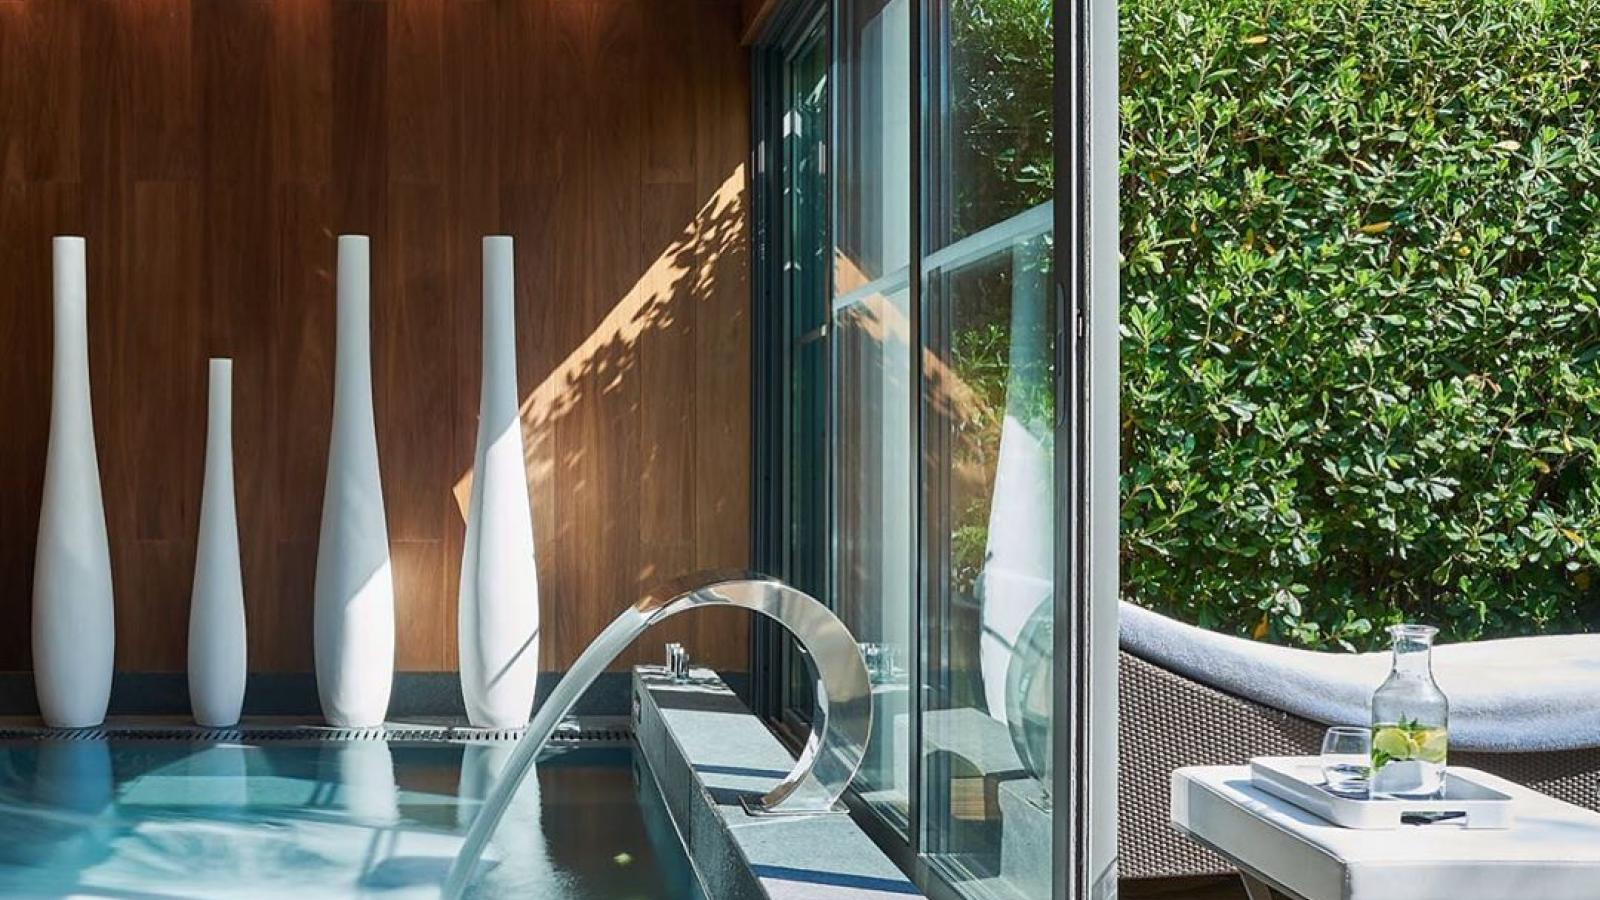 Les Canebiers and Bluemint at the spa boutique of the Hotel Sezz in Saint-Tropez